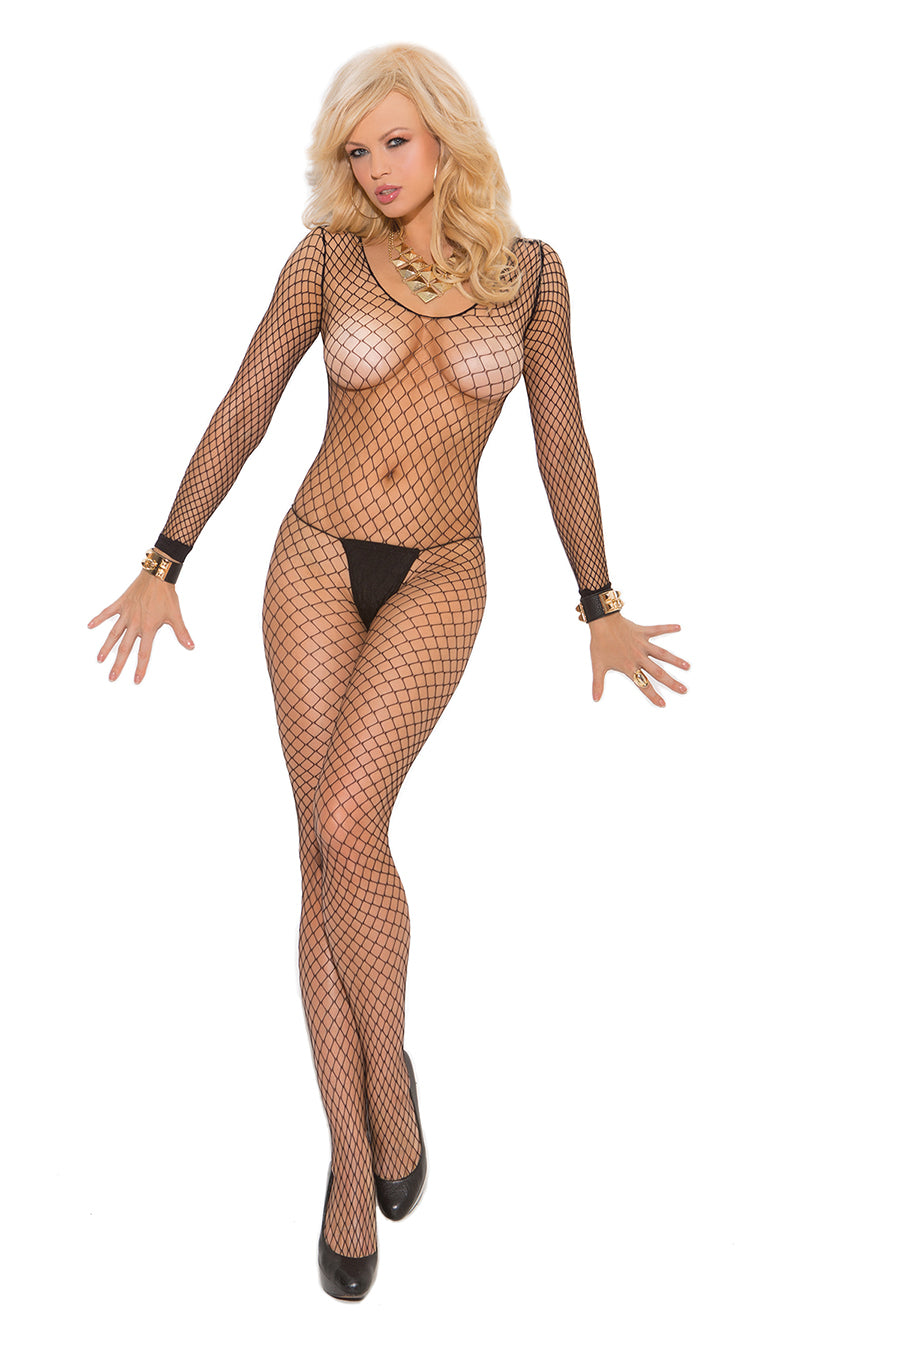 Fence Net Long Sleeve Bodystocking With Open Crotch